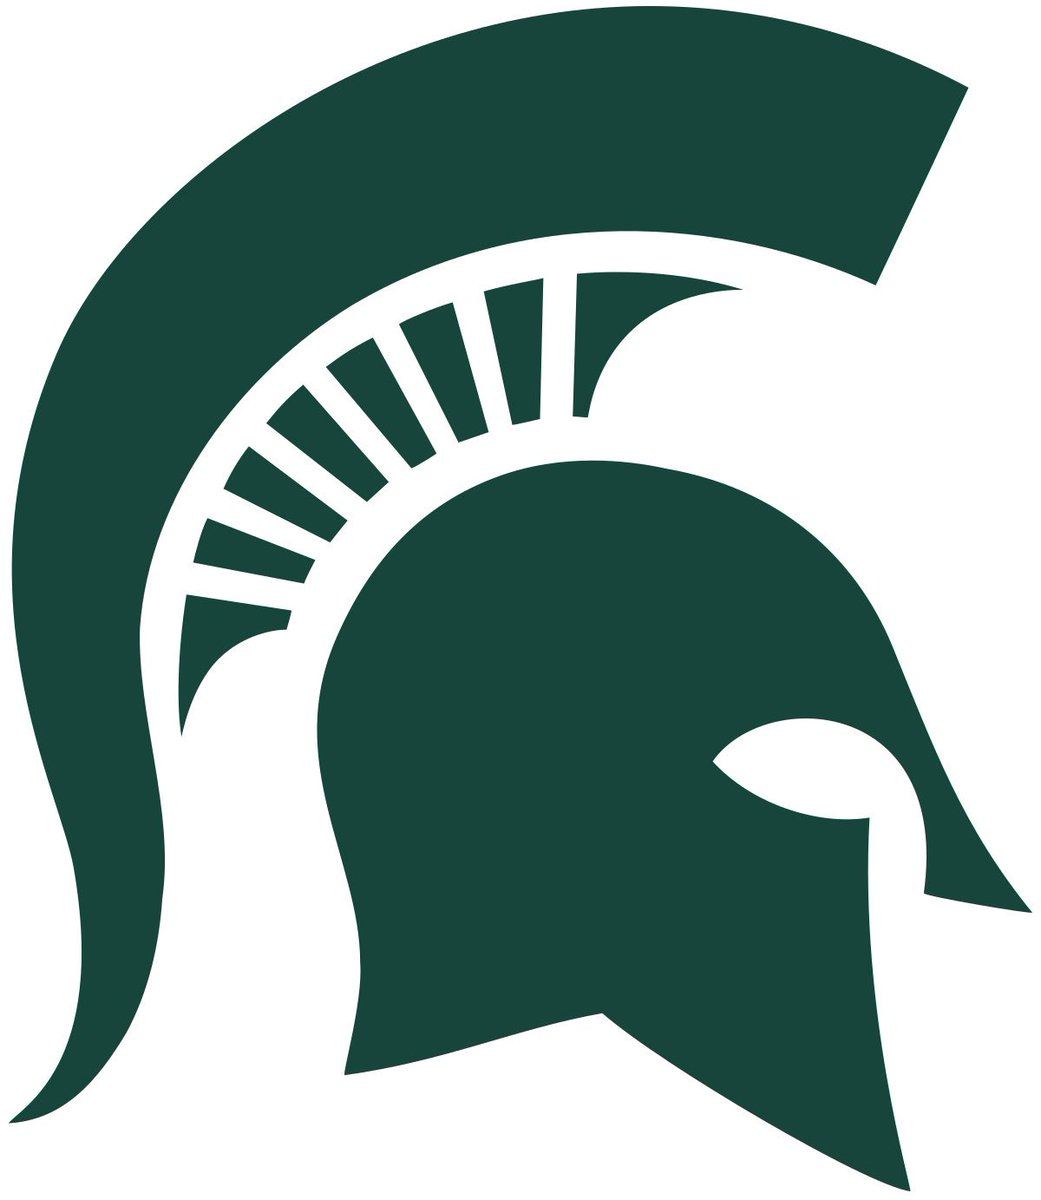 Congrats to 2021 Grayson HS RB Phil Mafah @PhilMafah1 on his latest offer from Michigan St. #Ramszn<br>http://pic.twitter.com/W1Nd0YyZIQ